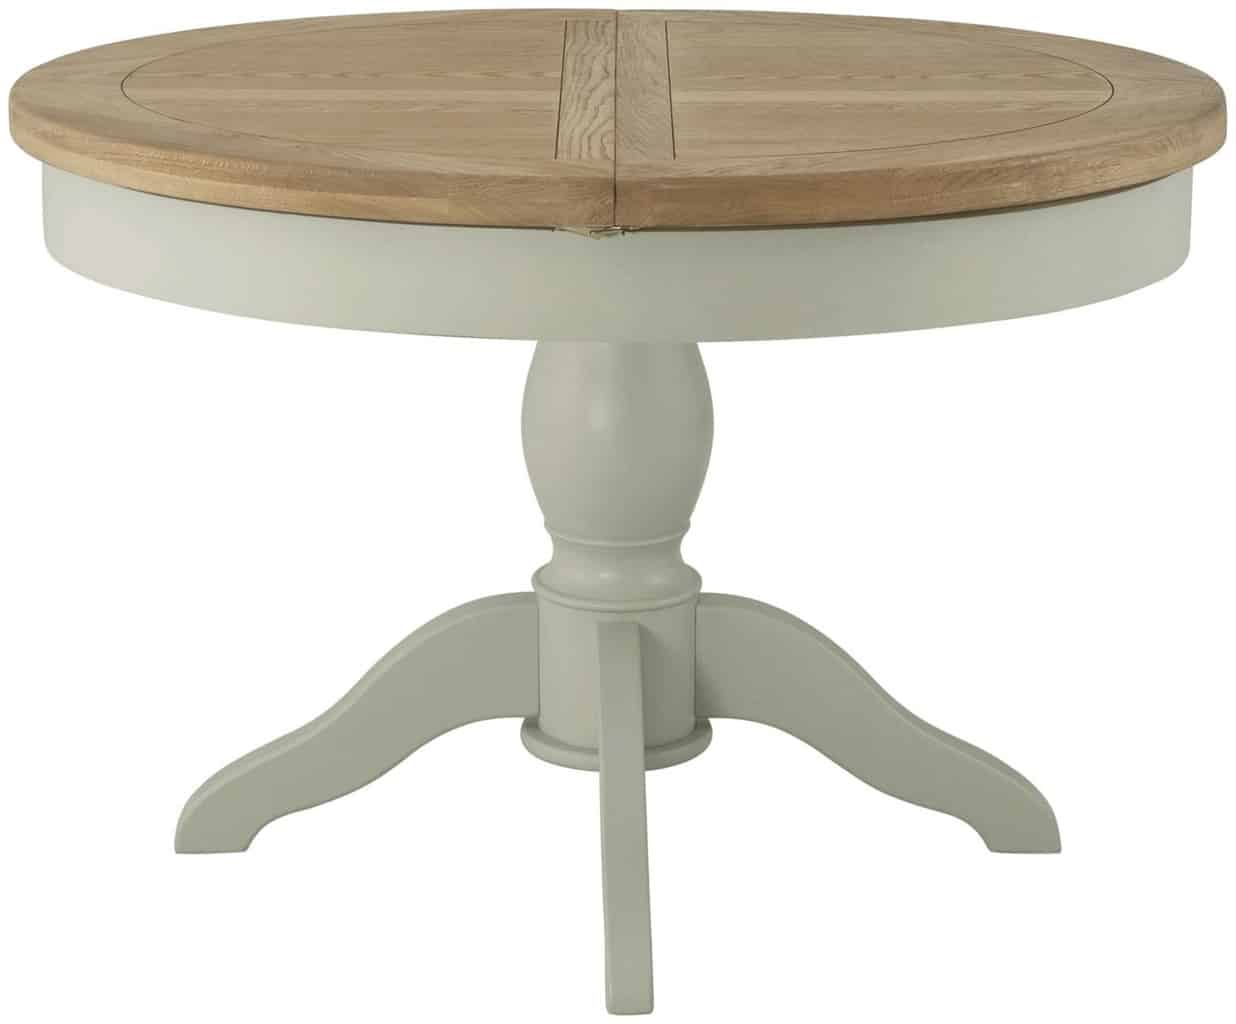 Classic Portland Painted Stone Grand Round Butterfly Extending Dining Table